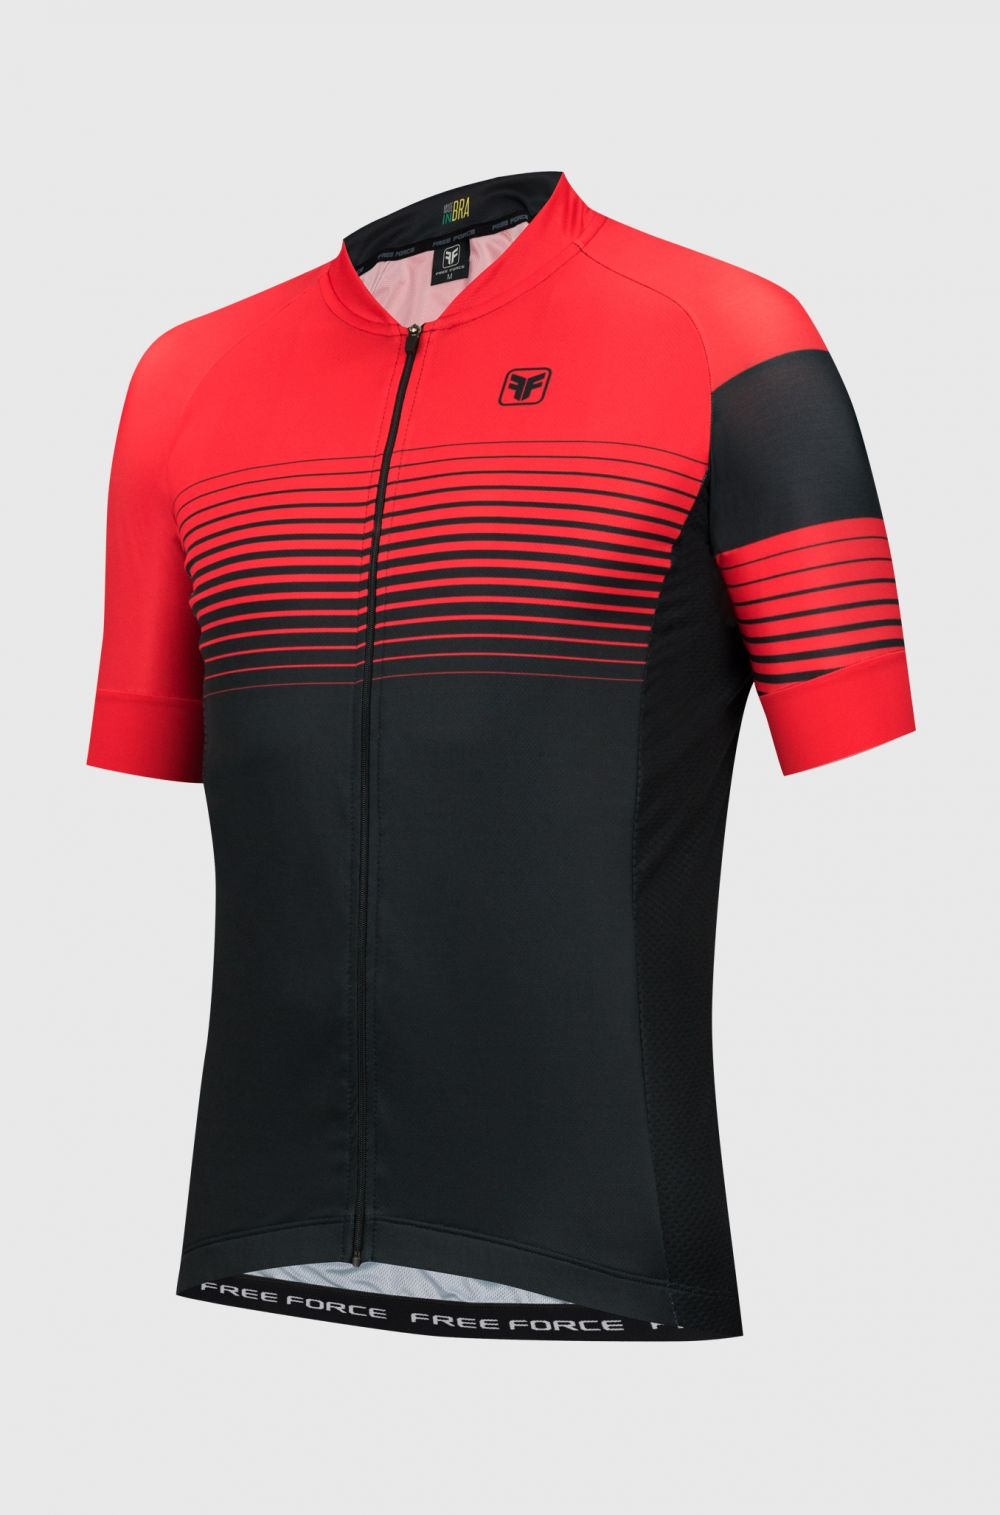 CAMISA FREE FORCE SPORT - REDDISH (MANGA CURTA)